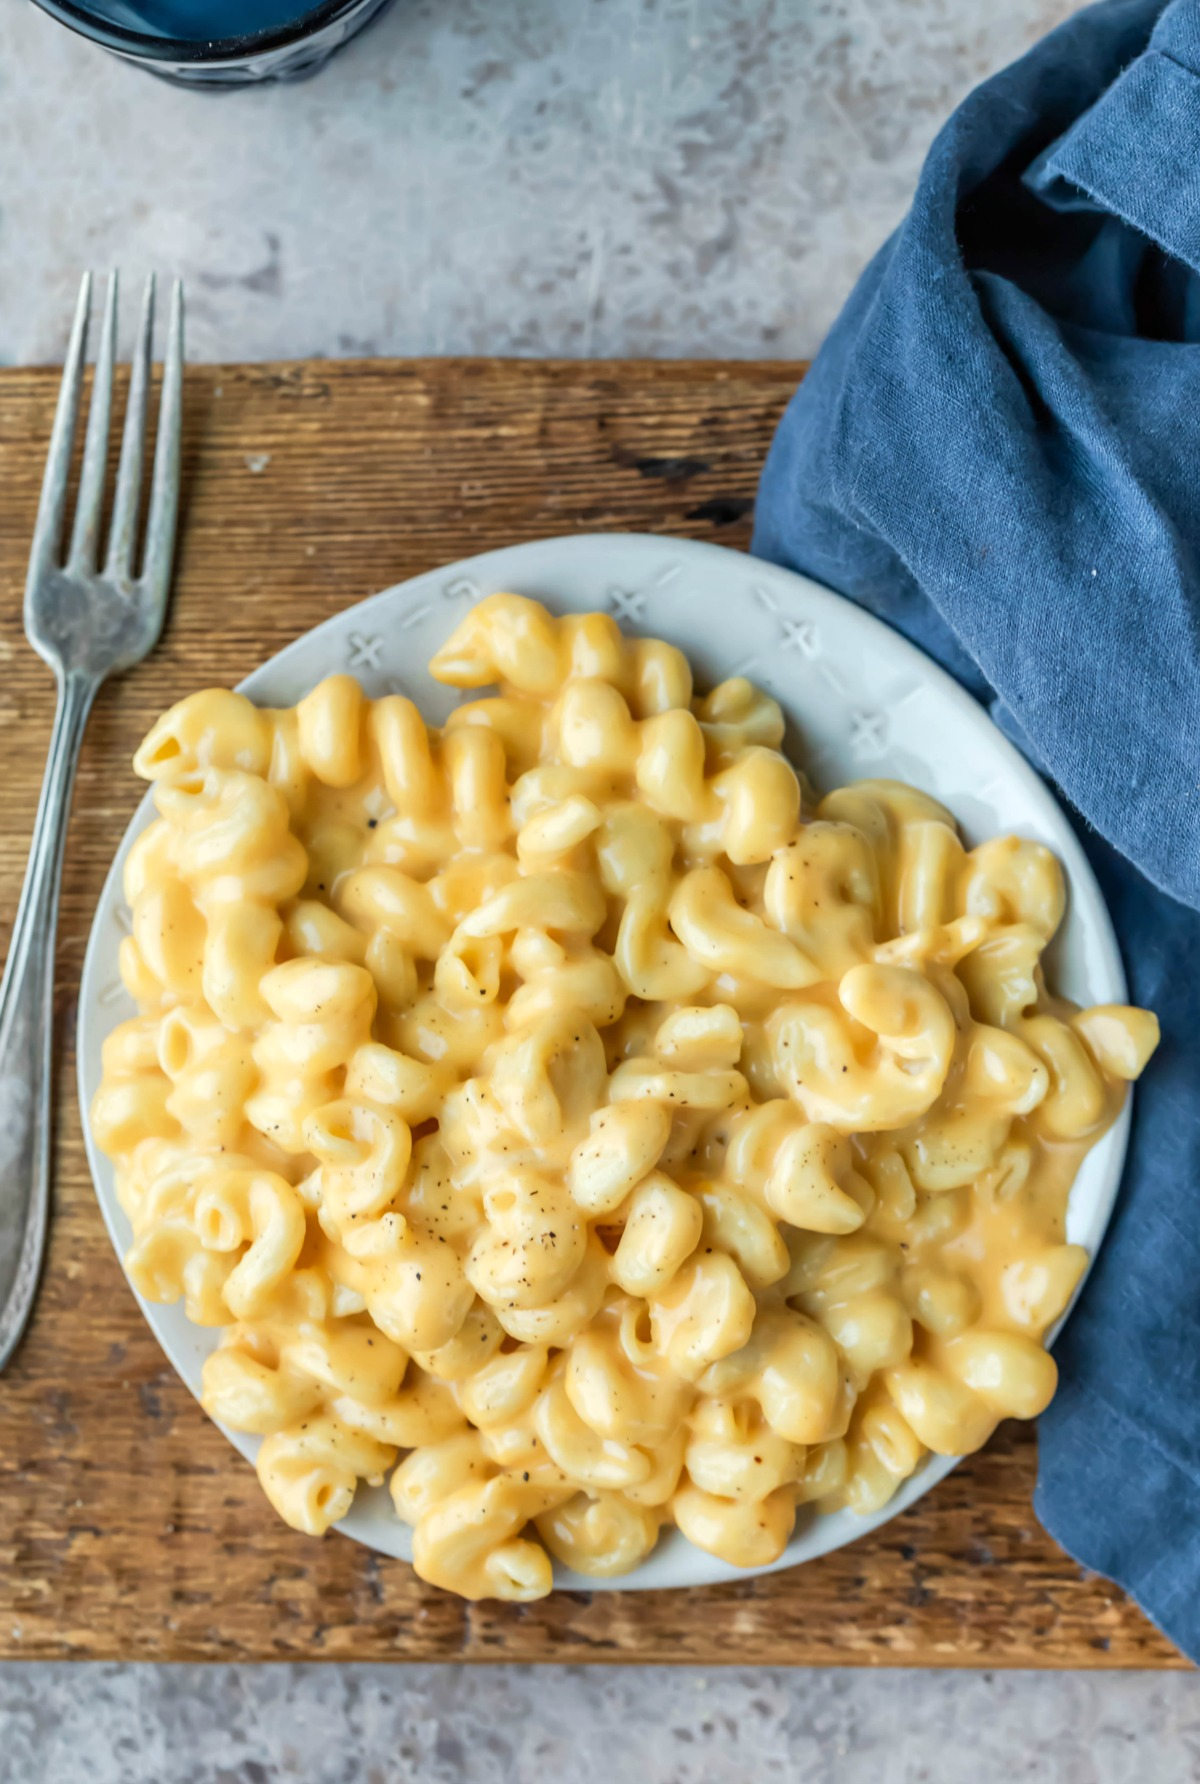 Plate of Instant Pot Macaroni and Cheese next to a blue linen napkin